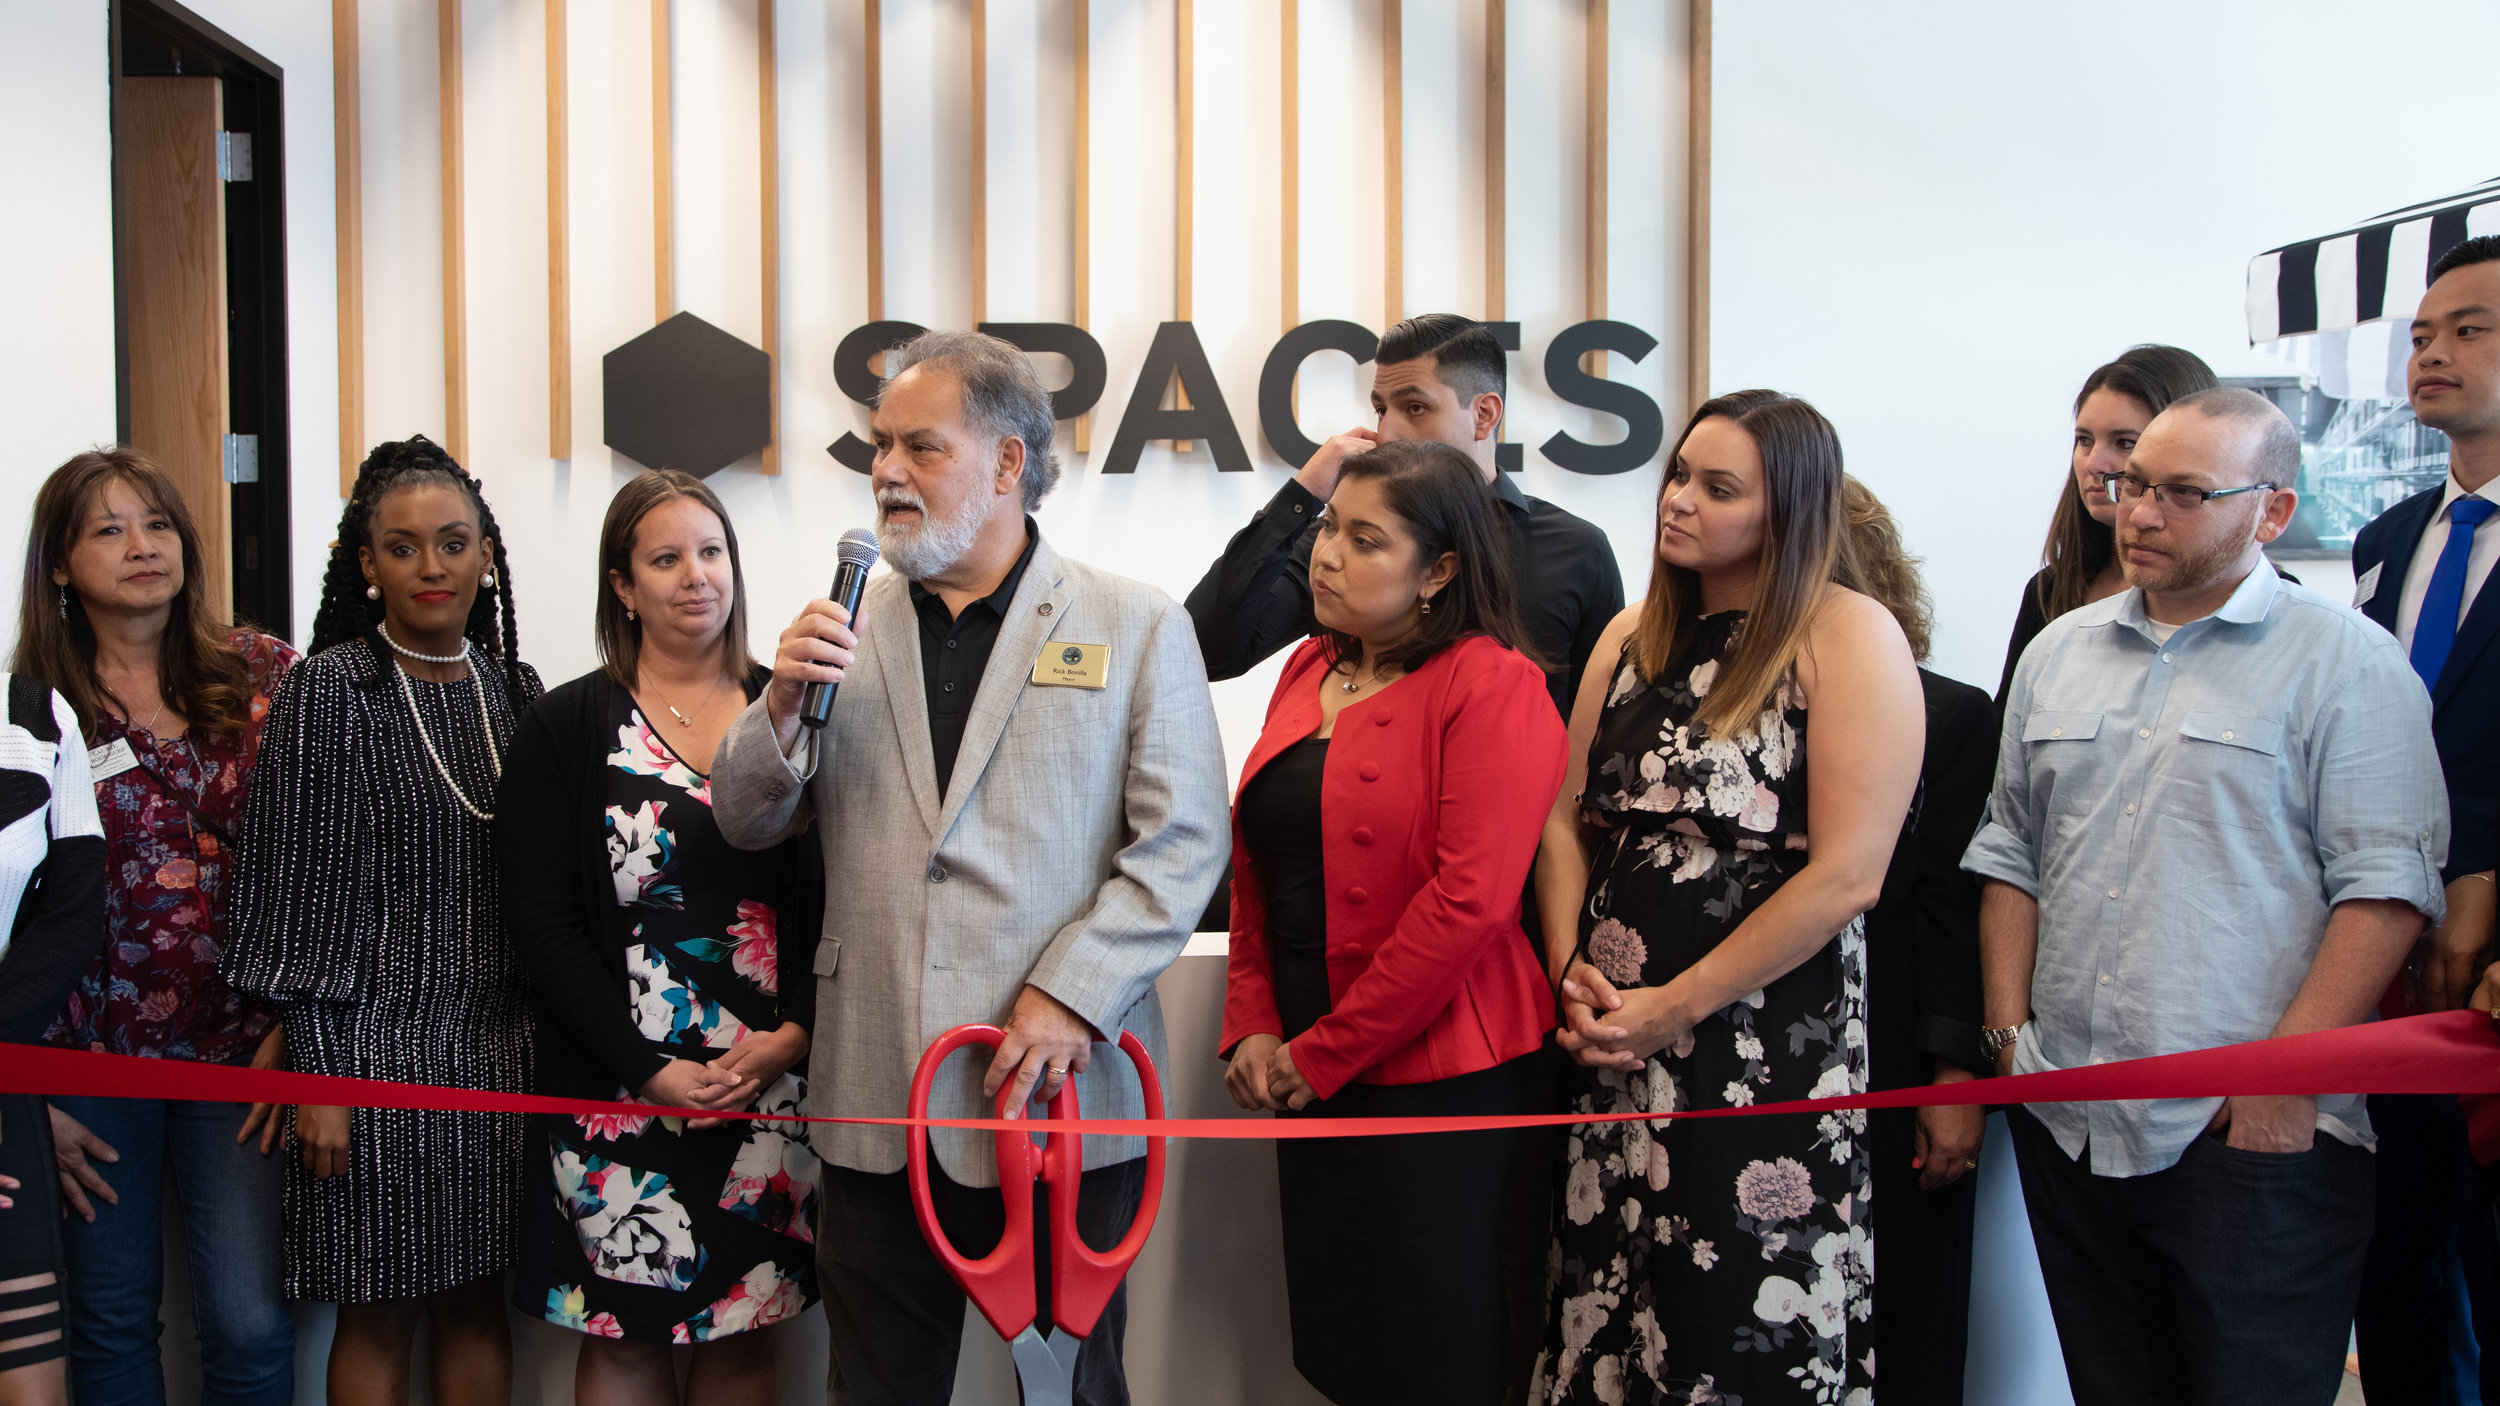 Spaces Ribbon Cutting Event - HiRes-83.jpg